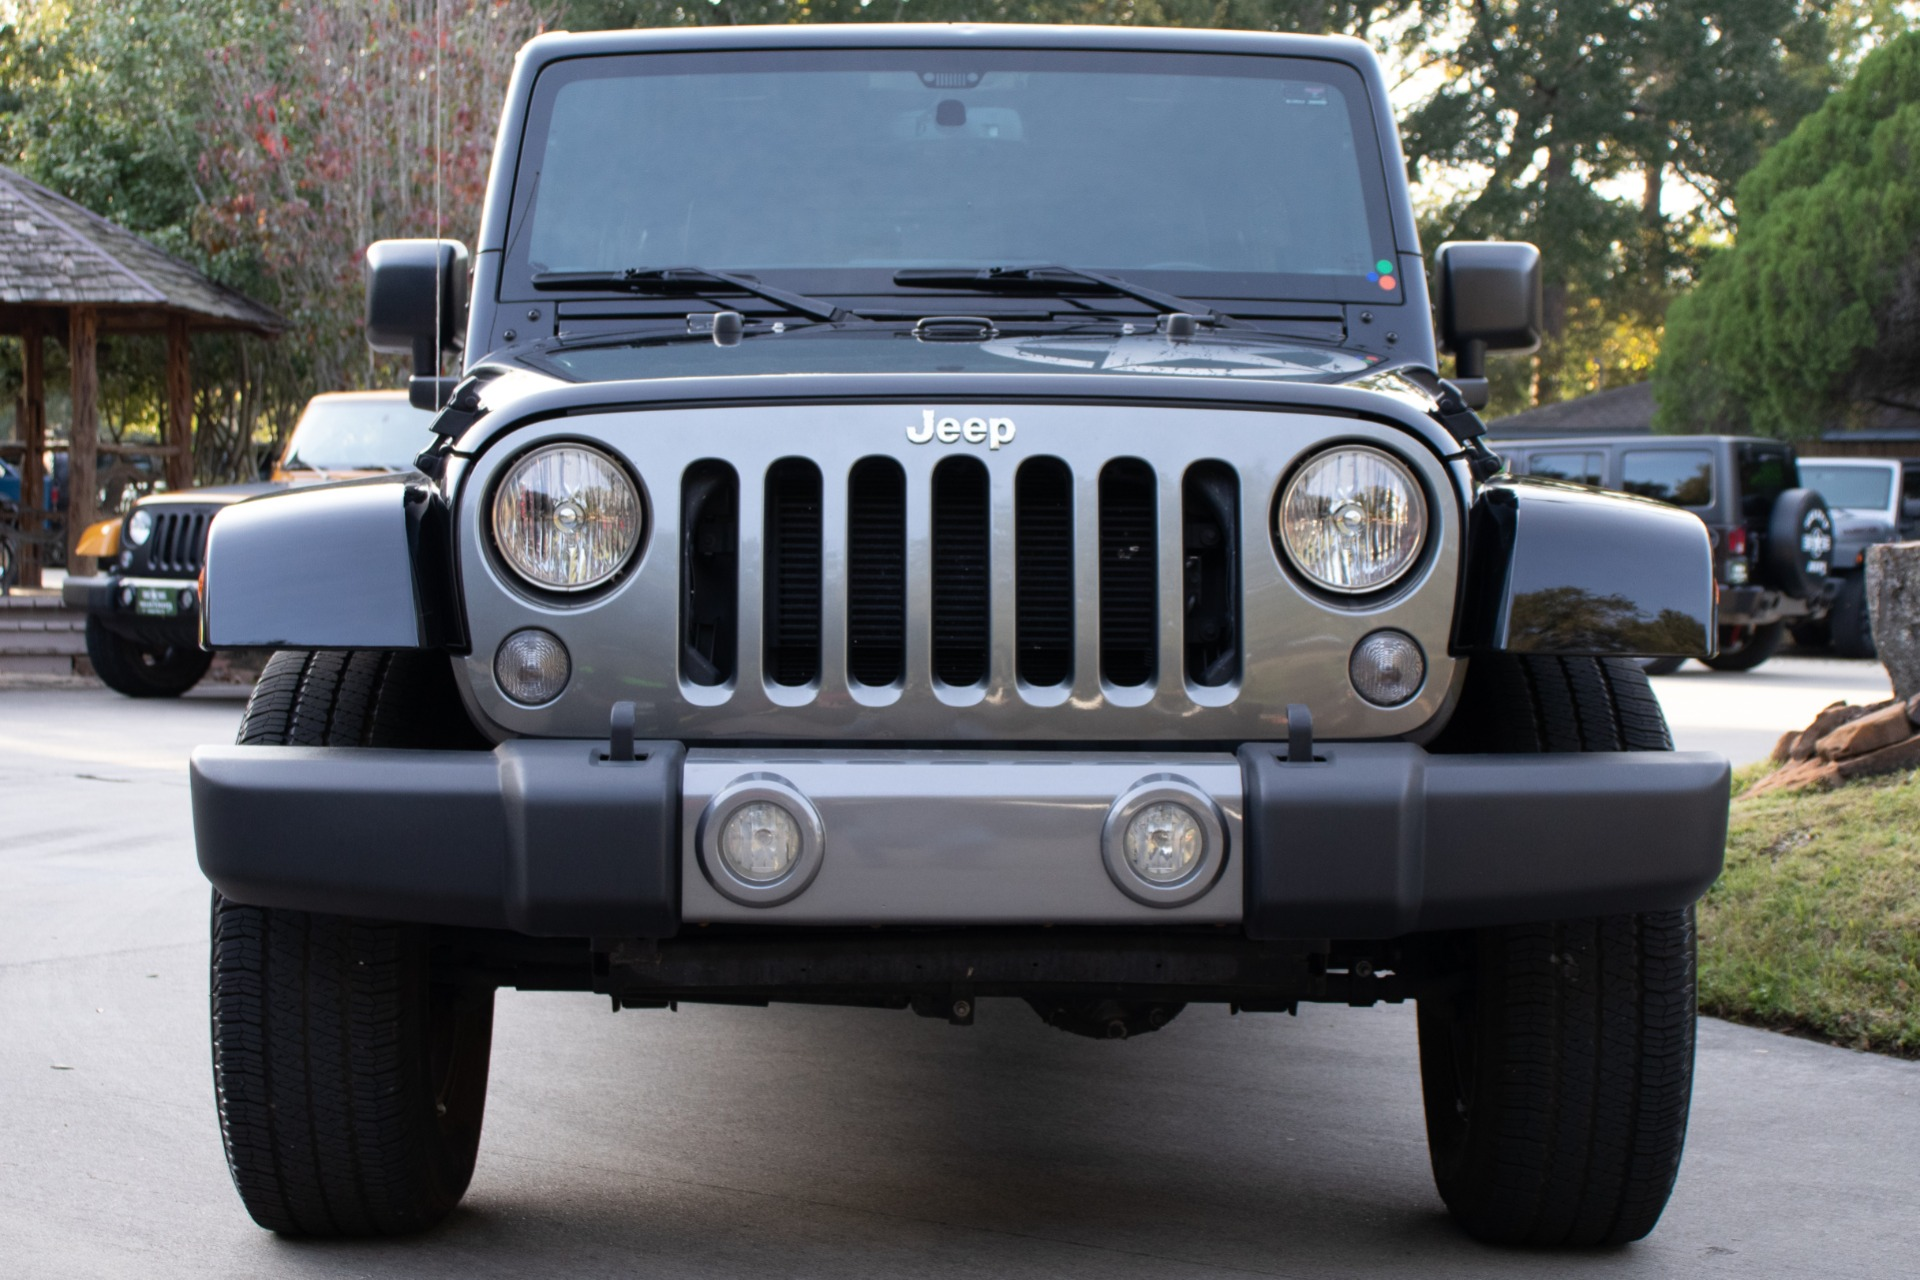 Used-2015-Jeep-Wrangler-Unlimited-Freedom-Edition